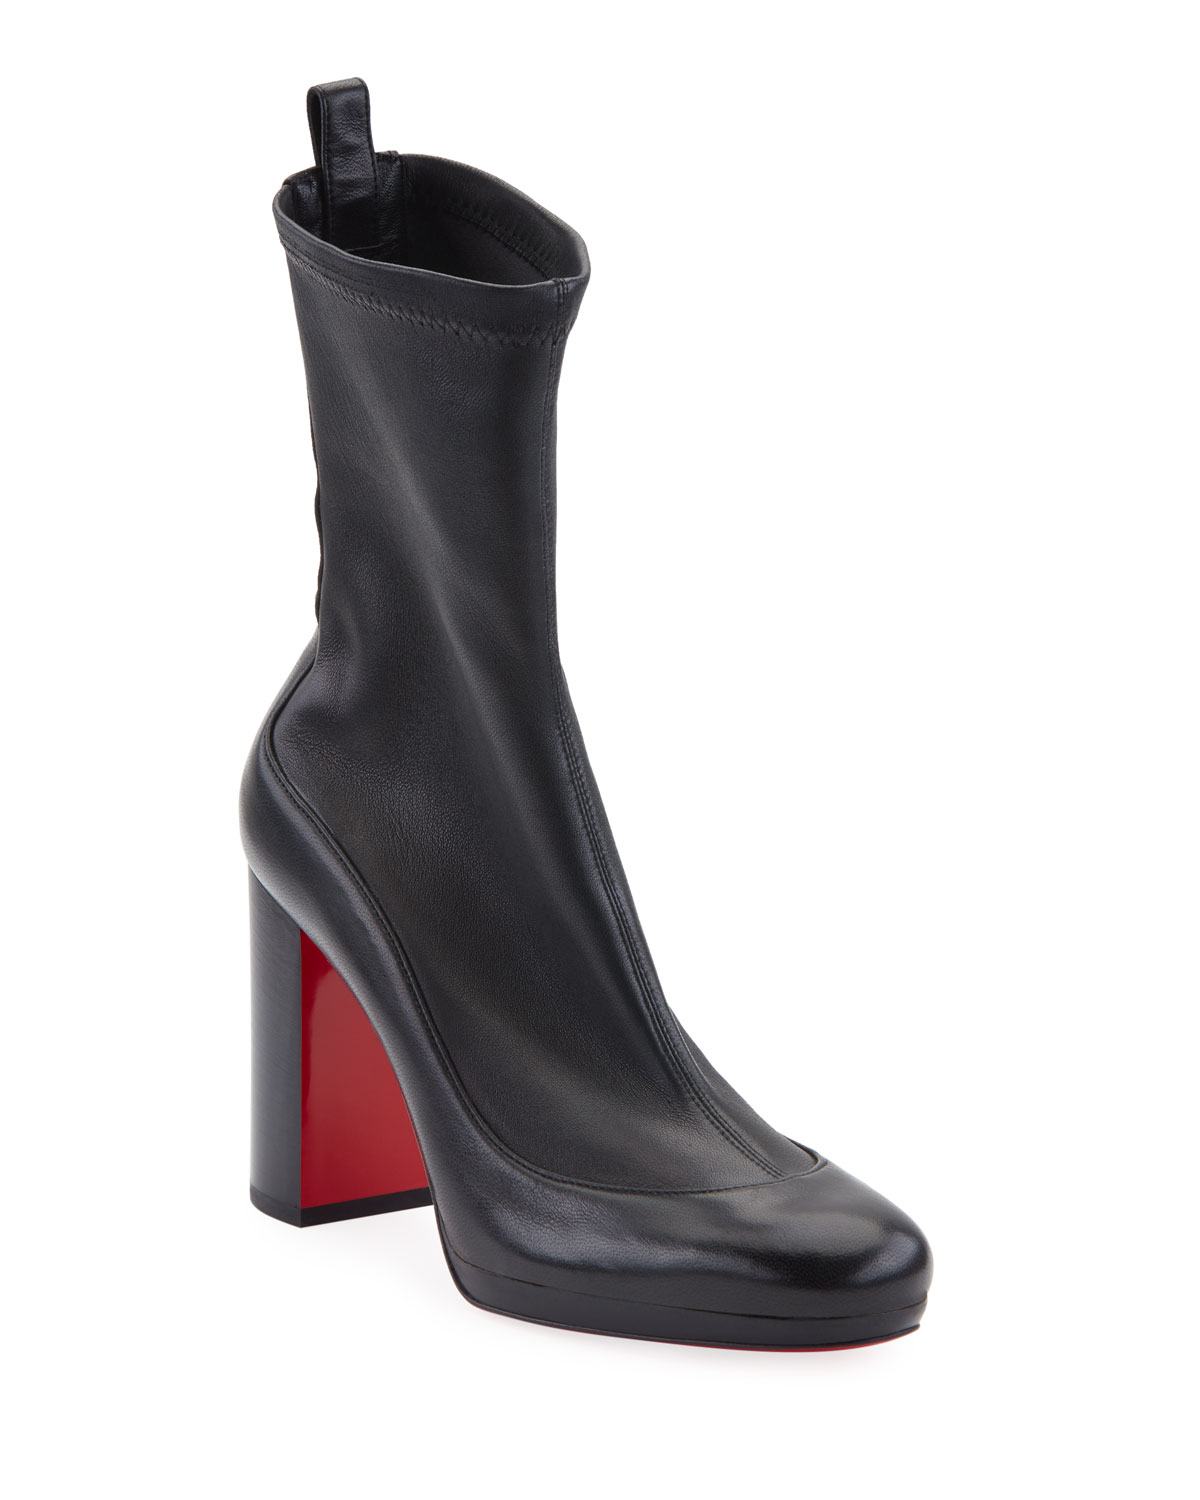 Contrevent Stretch Red Sole Booties by Christian Louboutin